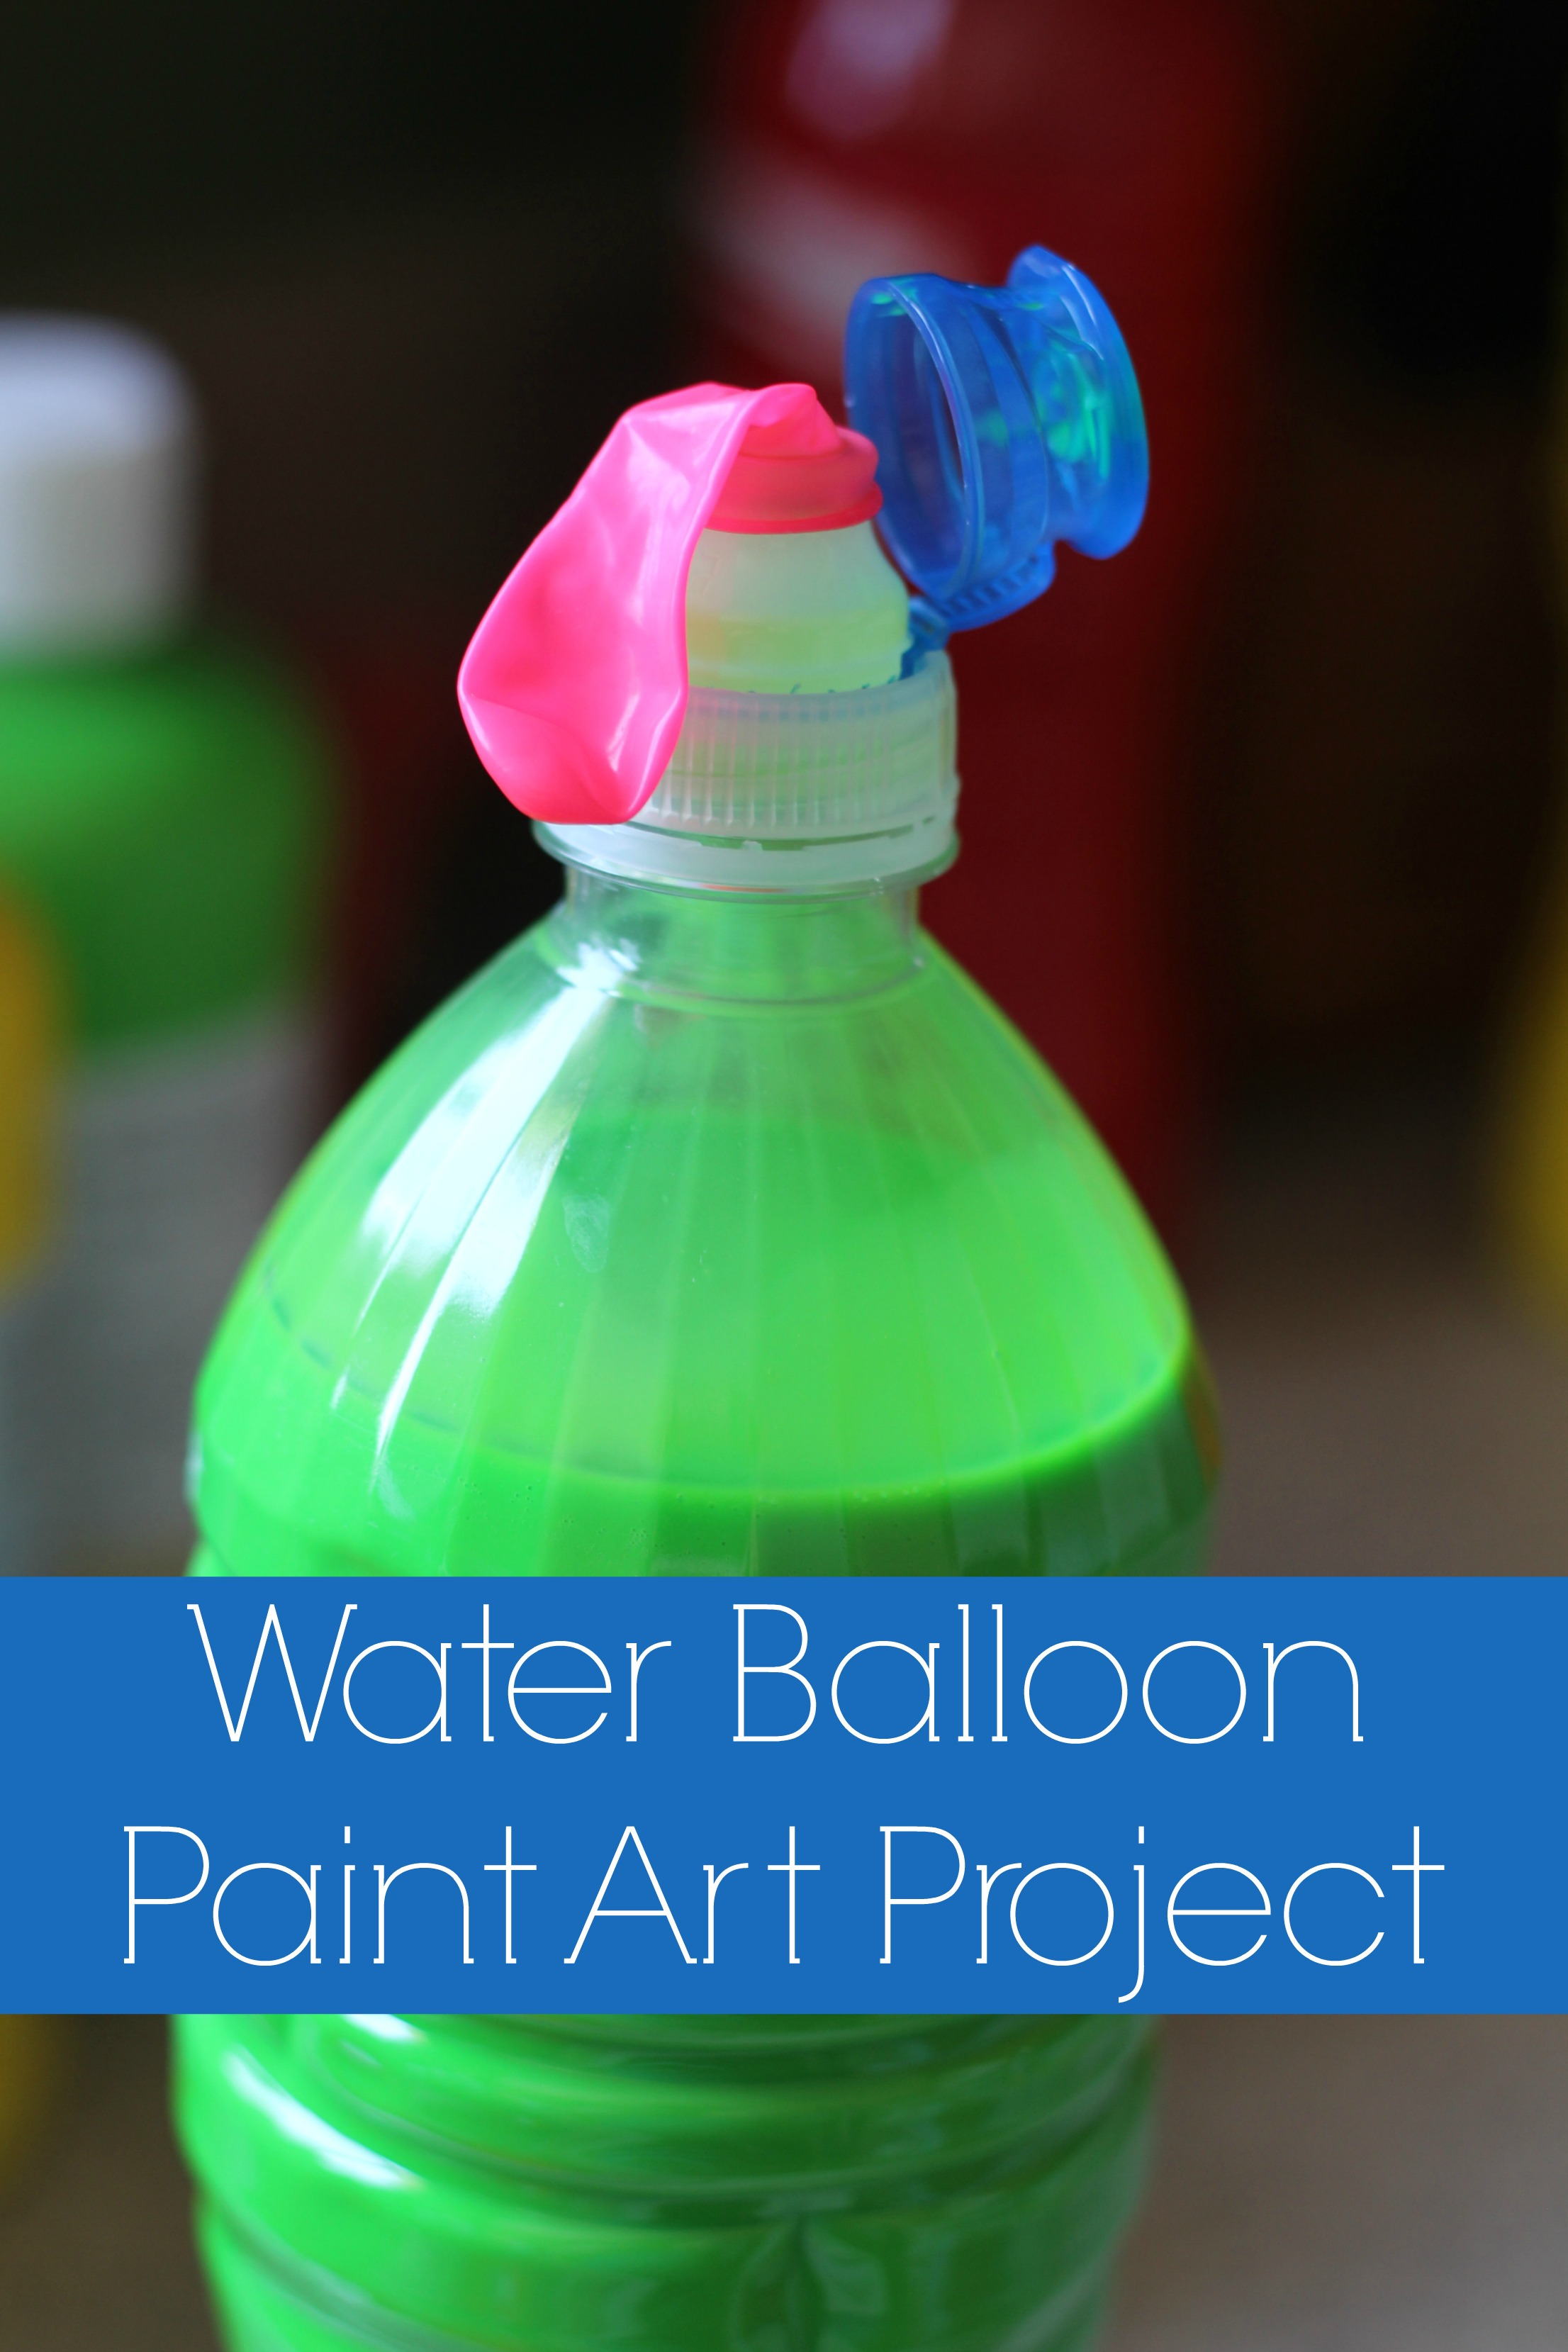 96 Art And Craft Ideas With Plastic Bottles